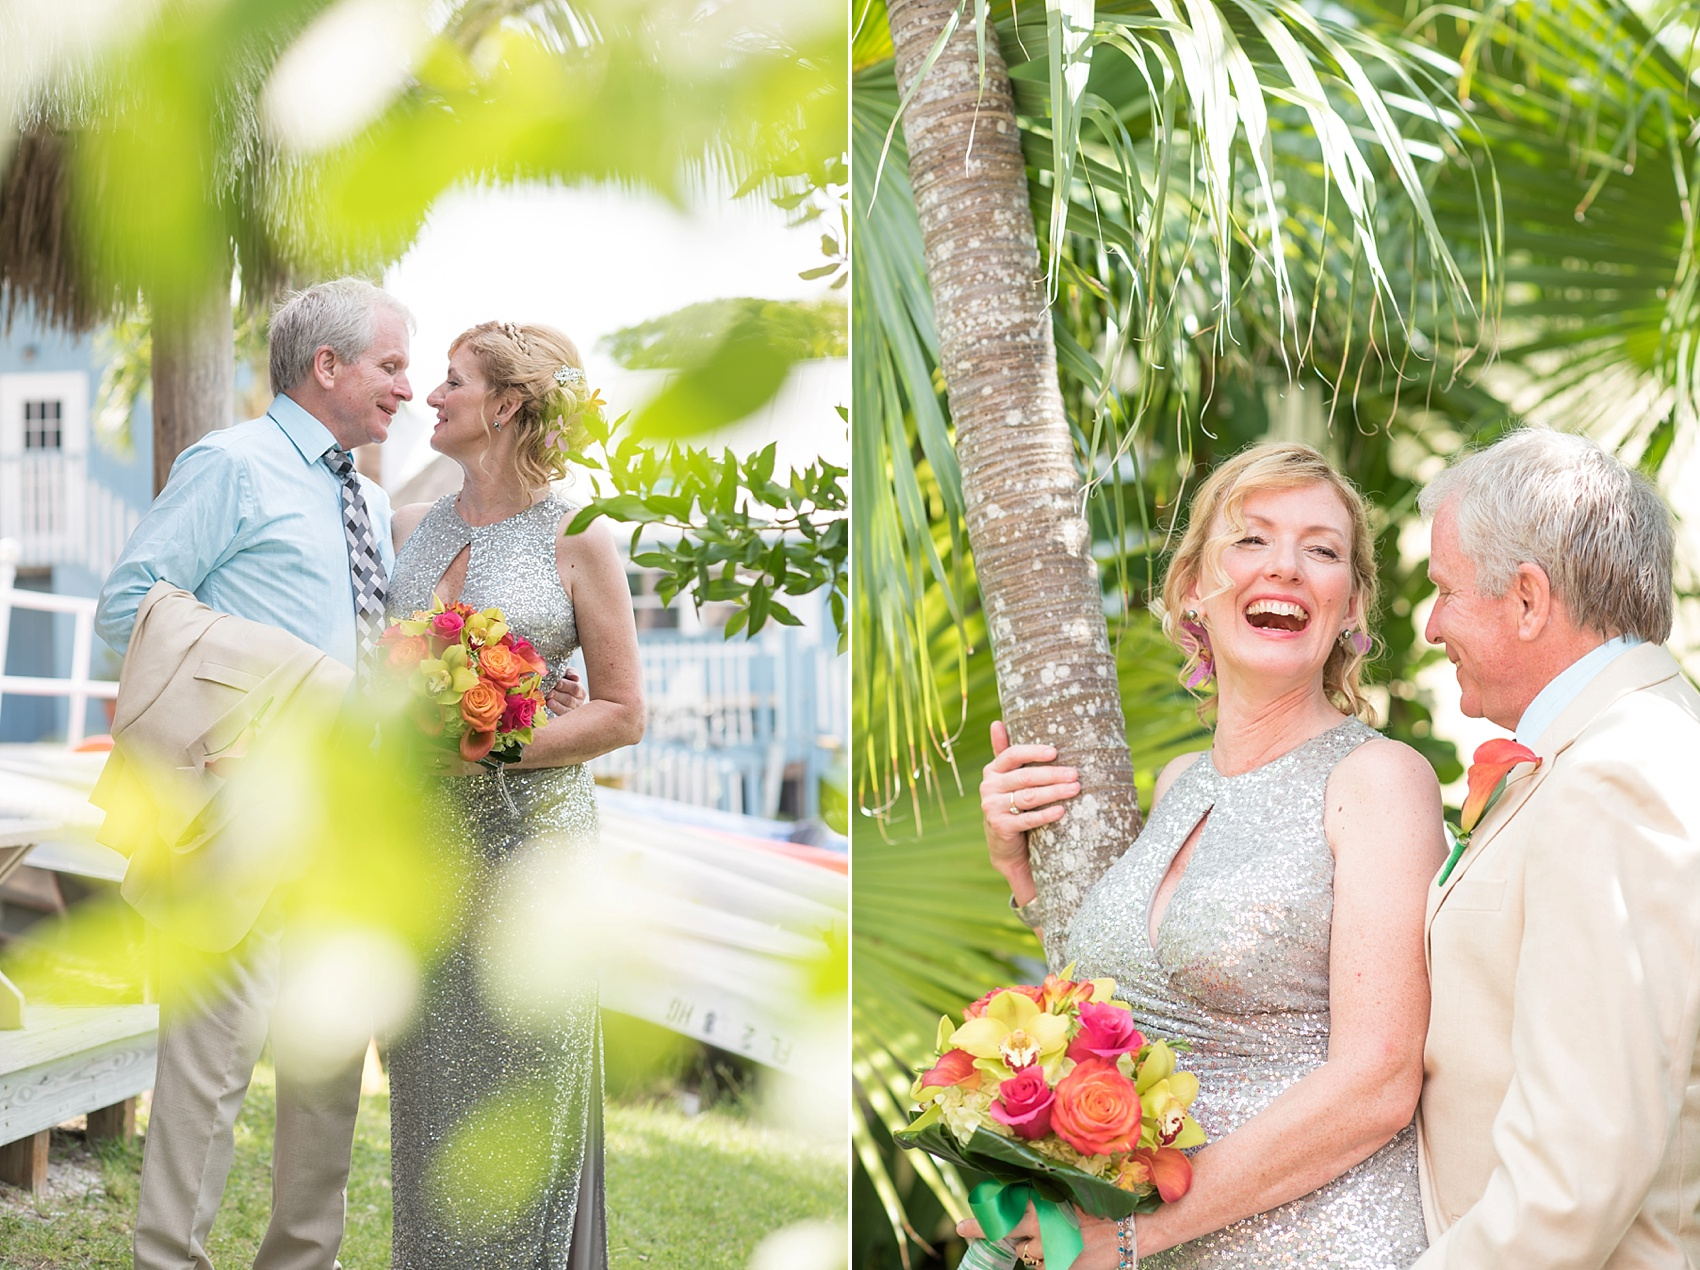 Silver sequin wedding gown for a small wedding on Captiva Island with a beach ceremony. Photos by Mikkel Paige Photography.